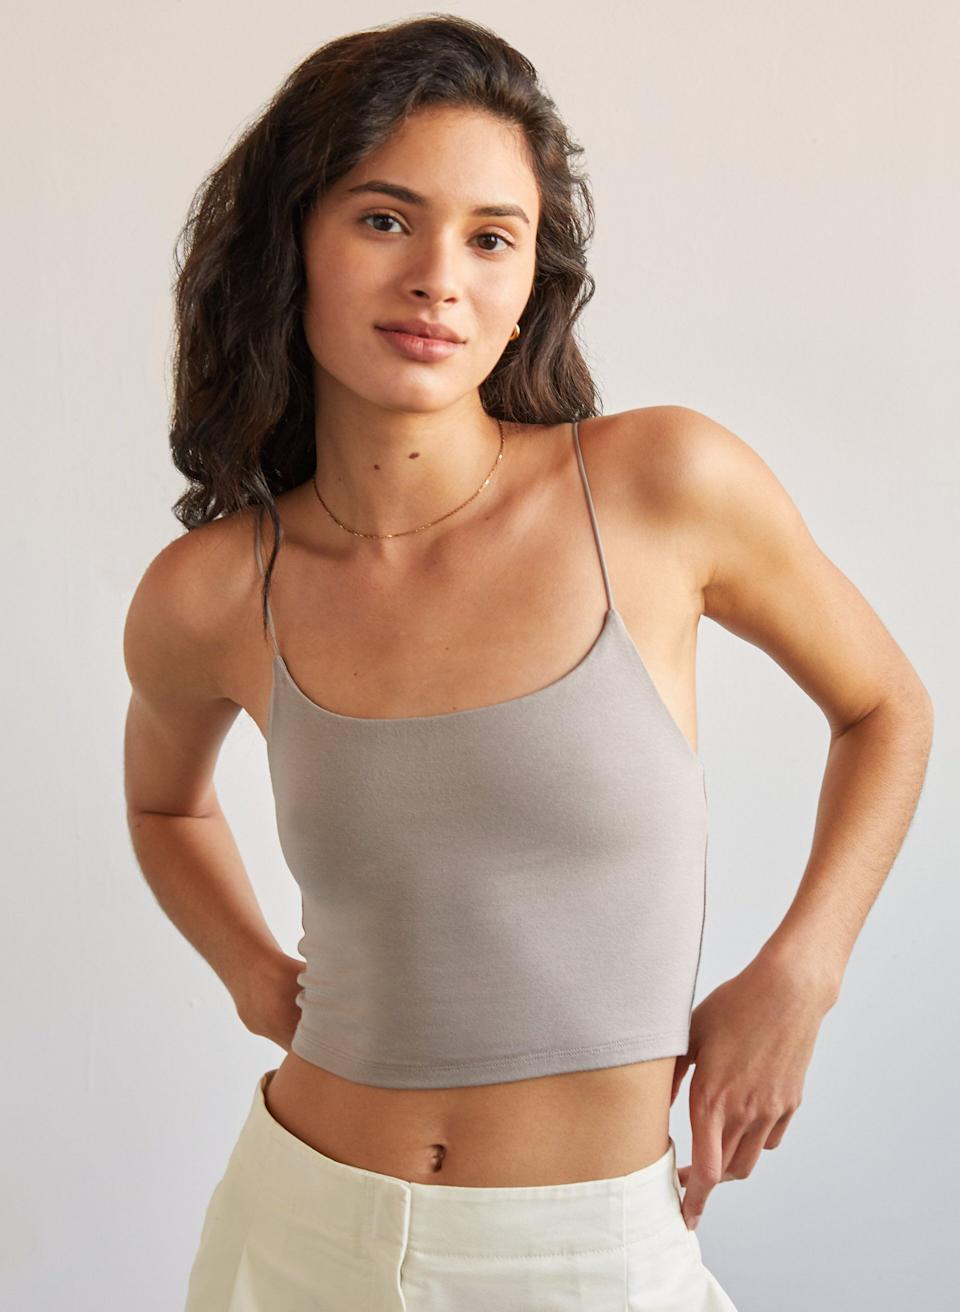 """The skinny lil' spaghetti straps and midriff-baring cut pairs exceptionally well with high-rise pants. Hot take: <a href=""""https://www.huffpost.com/entry/skinny-jeans-canceled-gen-z_l_60256e5cc5b6d667582b6229"""" target=""""_blank"""" rel=""""noopener noreferrer"""">Ain't nothing wrong with those pants being skinny jeans</a>, either!<br /><br /><strong>Promising review</strong>: """"<strong>I LOVE this tank. I have four of them and still want more.</strong>The material is great (it's quite thick) and I love the thin straps. I don't wear a bra with mine and love that the back is cut lower than the front. I wore them all summer with high-waisted shorts/jeans and always felt so cute. Still wear them now during the winter but with baggy knit sweaters."""" —<a href=""""https://go.skimresources.com?id=38395X987171&xs=1&url=https%3A%2F%2Fwww.aritzia.com%2Fus%2Fen%2Fproduct%2Ftiny-tank%2F67652.html"""" target=""""_blank"""" rel=""""nofollow noopener noreferrer"""" data-skimlinks-tracking=""""5876227 xid:fr1621256553293gde"""" data-vars-affiliate=""""www.aritzia.com"""" data-vars-href=""""https://www.aritzia.com/us/en/product/tiny-tank/67652.html?dwvar_67652_color=18255"""" data-vars-keywords=""""fast fashion"""" data-vars-link-id=""""16400690"""" data-vars-price="""""""" data-vars-product-id=""""20980707"""" data-vars-product-img=""""https://aritzia.scene7.com/is/image/Aritzia/large/s21_07_a01_67652_18255_on_a.jpg"""" data-vars-product-title=""""tiny tank Cropped scoop-neck tank"""" data-vars-retailers=""""aritzia"""" data-ml-dynamic=""""true"""" data-ml-dynamic-type=""""sl"""" data-orig-url=""""https://www.aritzia.com/us/en/product/tiny-tank/67652.html?dwvar_67652_color=18255"""" data-ml-id=""""1"""">Kristie P.</a><br /><br /><strong><a href=""""https://go.skimresources.com?id=38395X987171&xs=1&url=https%3A%2F%2Fwww.aritzia.com%2Fus%2Fen%2Fproduct%2Ftiny-tank%2F67652.html"""" target=""""_blank"""" rel=""""noopener noreferrer"""">Get it from Aritzia for$30(available in sizes 2XS–XL and in 11 colors).</a></strong>"""